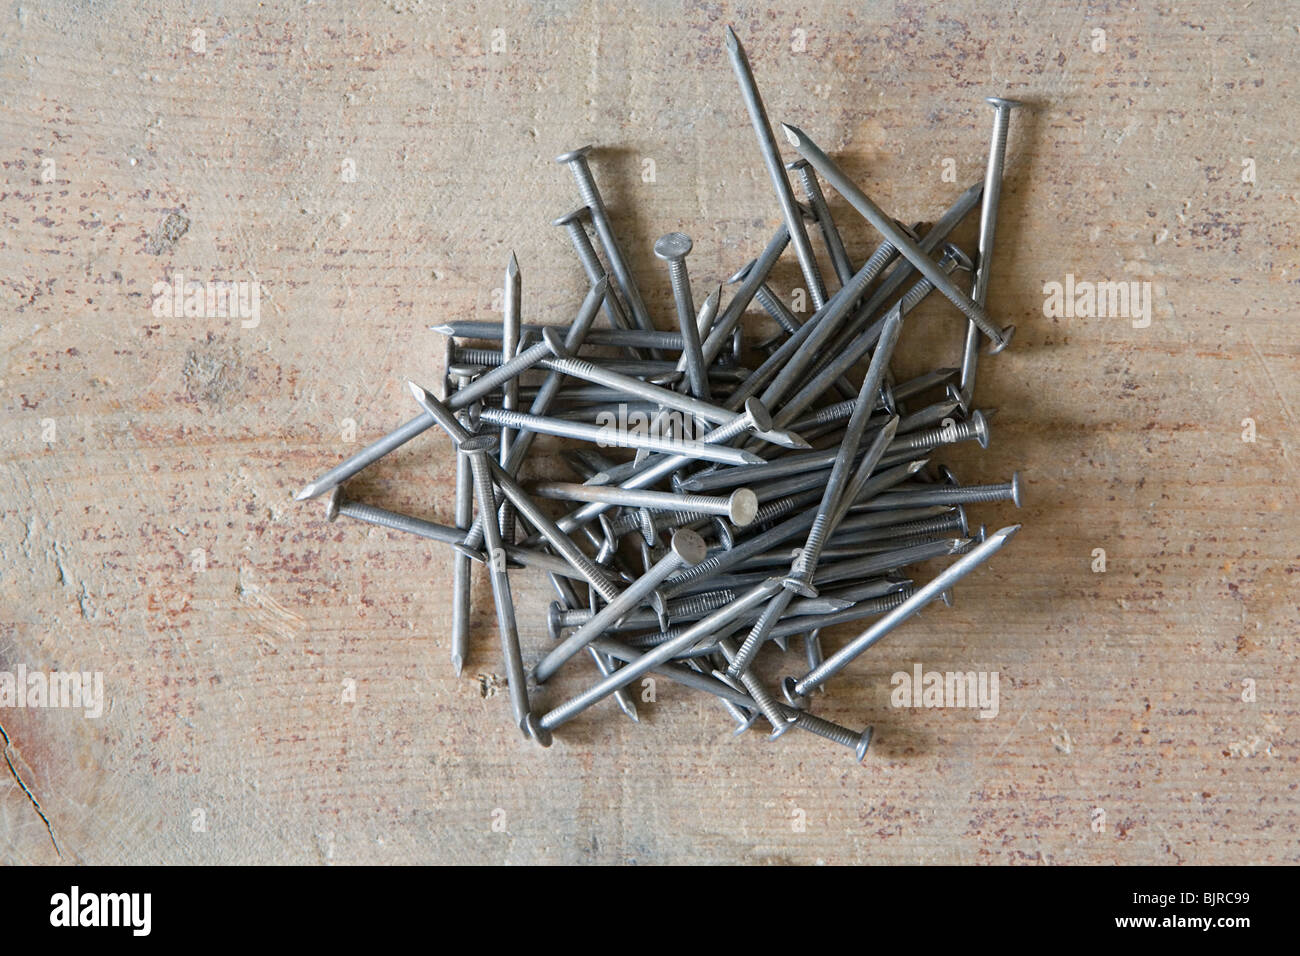 Pile of nails - Stock Image